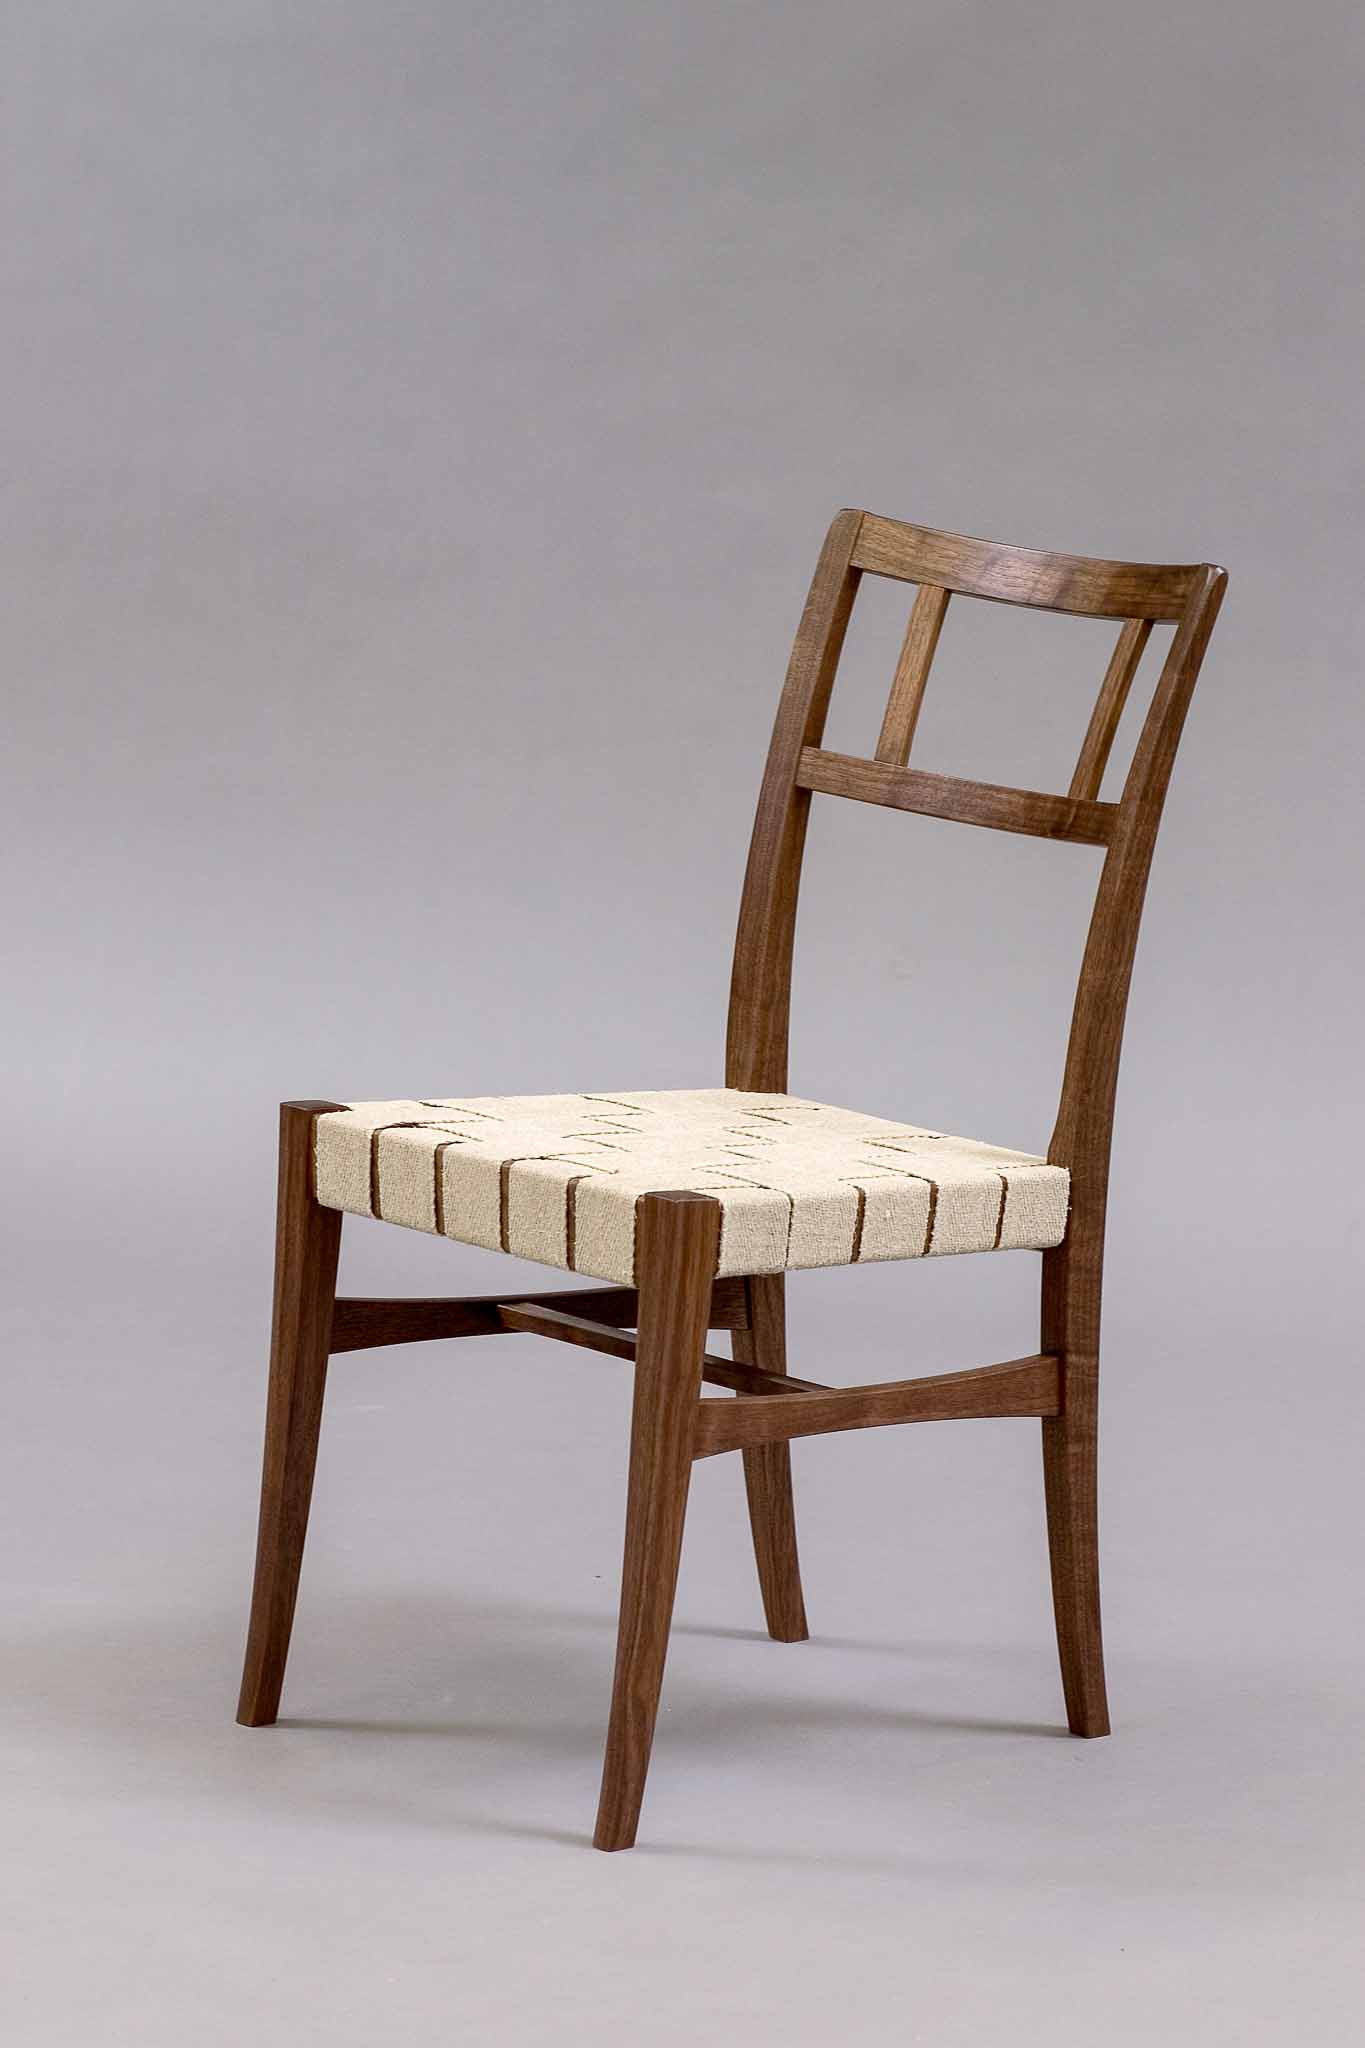 pasi chair with woven seat